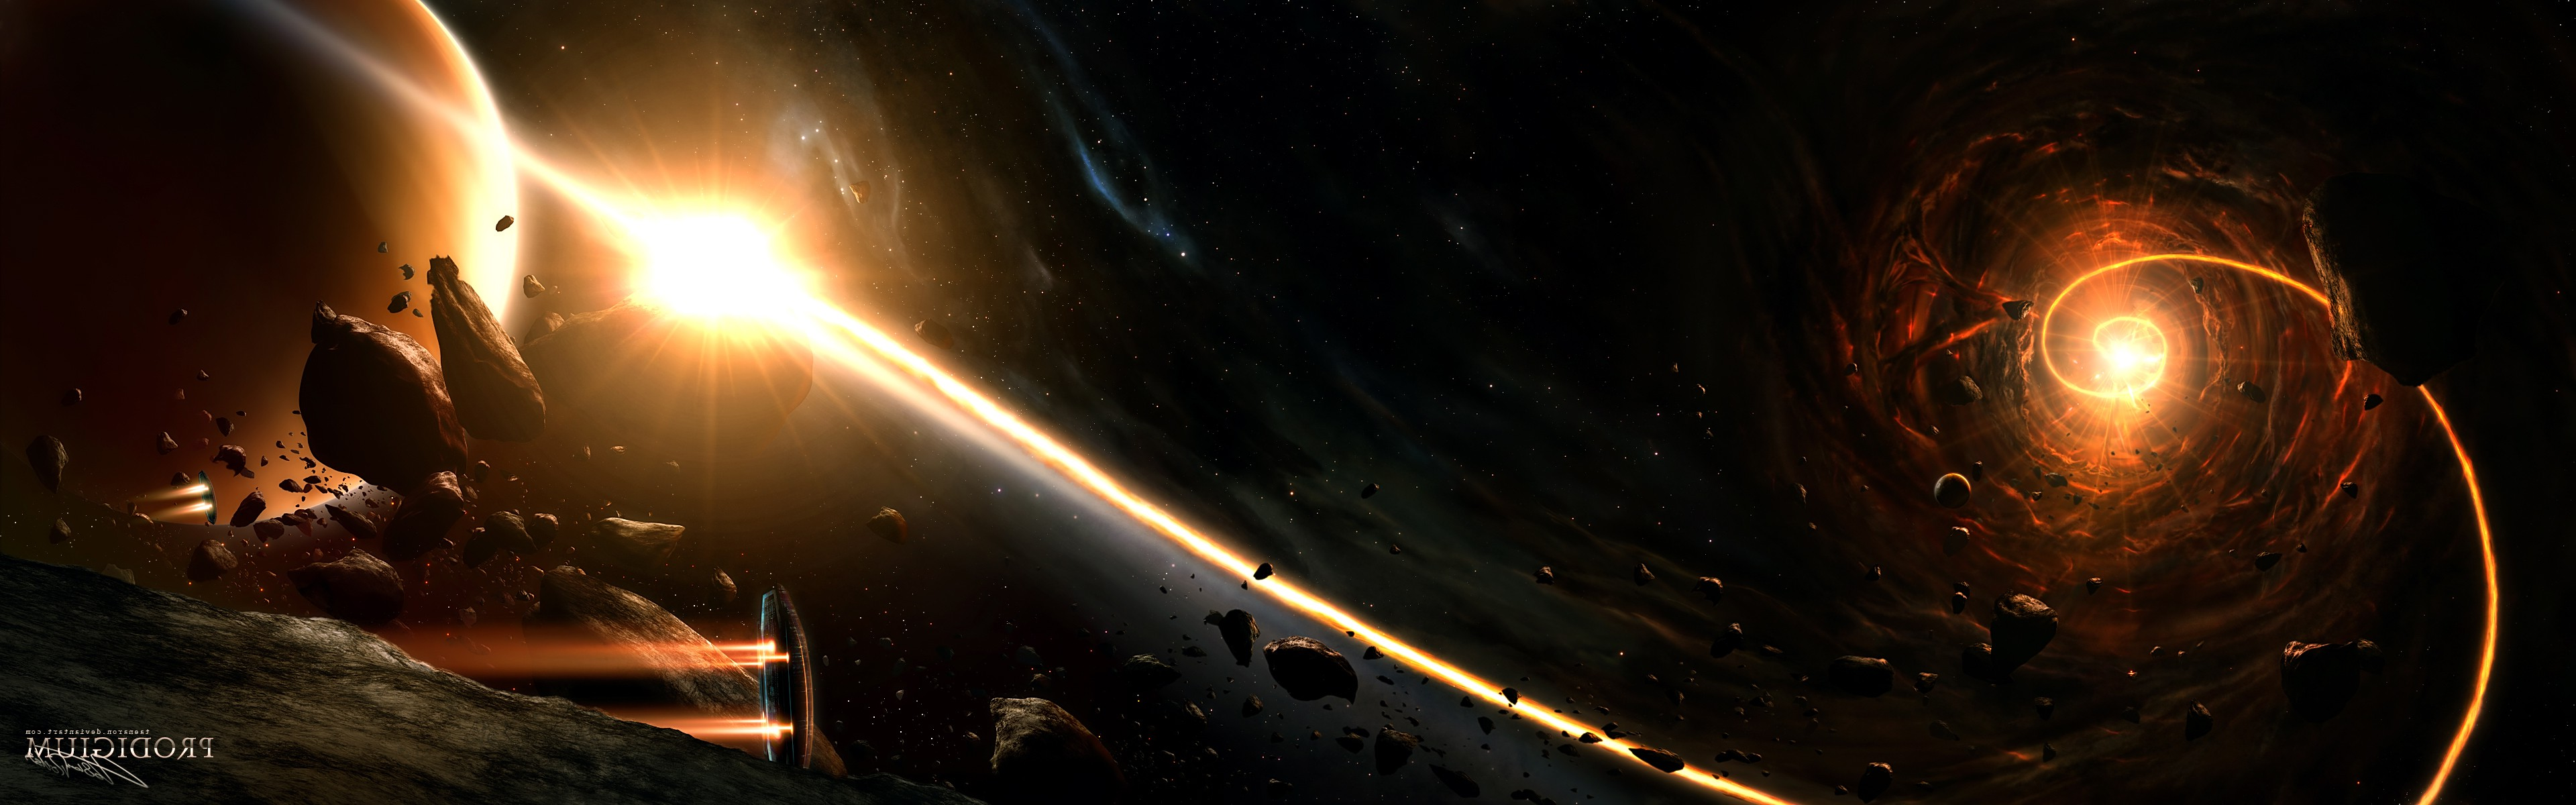 3d Asteroid Wallpaper Space Planet Asteroid Spaceship Stars Nebula